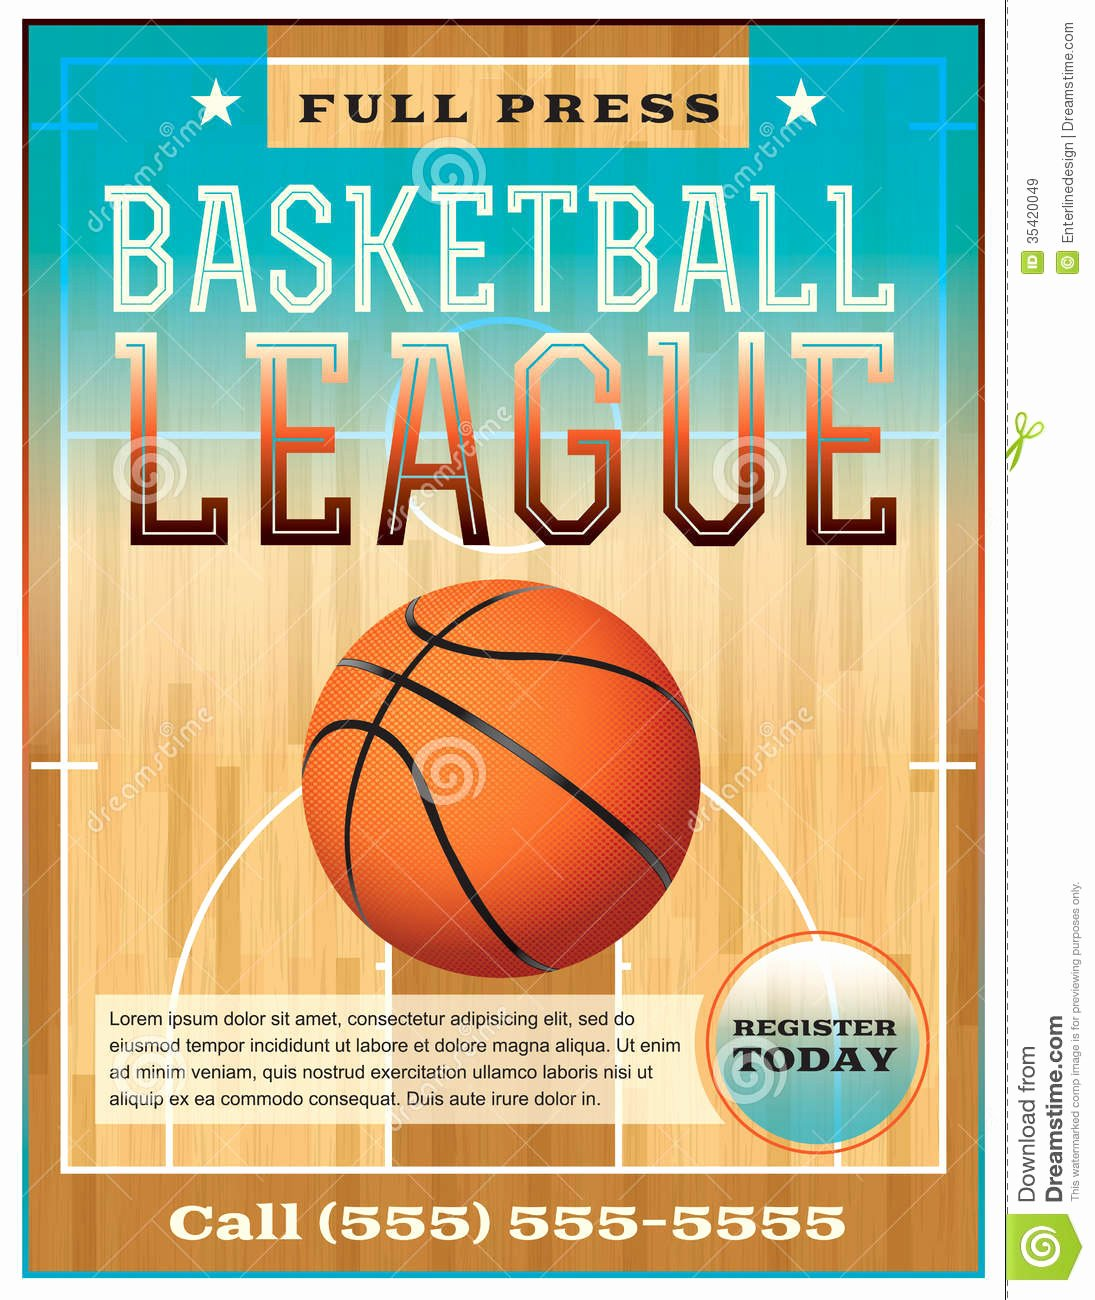 Basketball Camp Flyer Template Fresh Basketball League Flyer Stock Vector Image Of Flyer